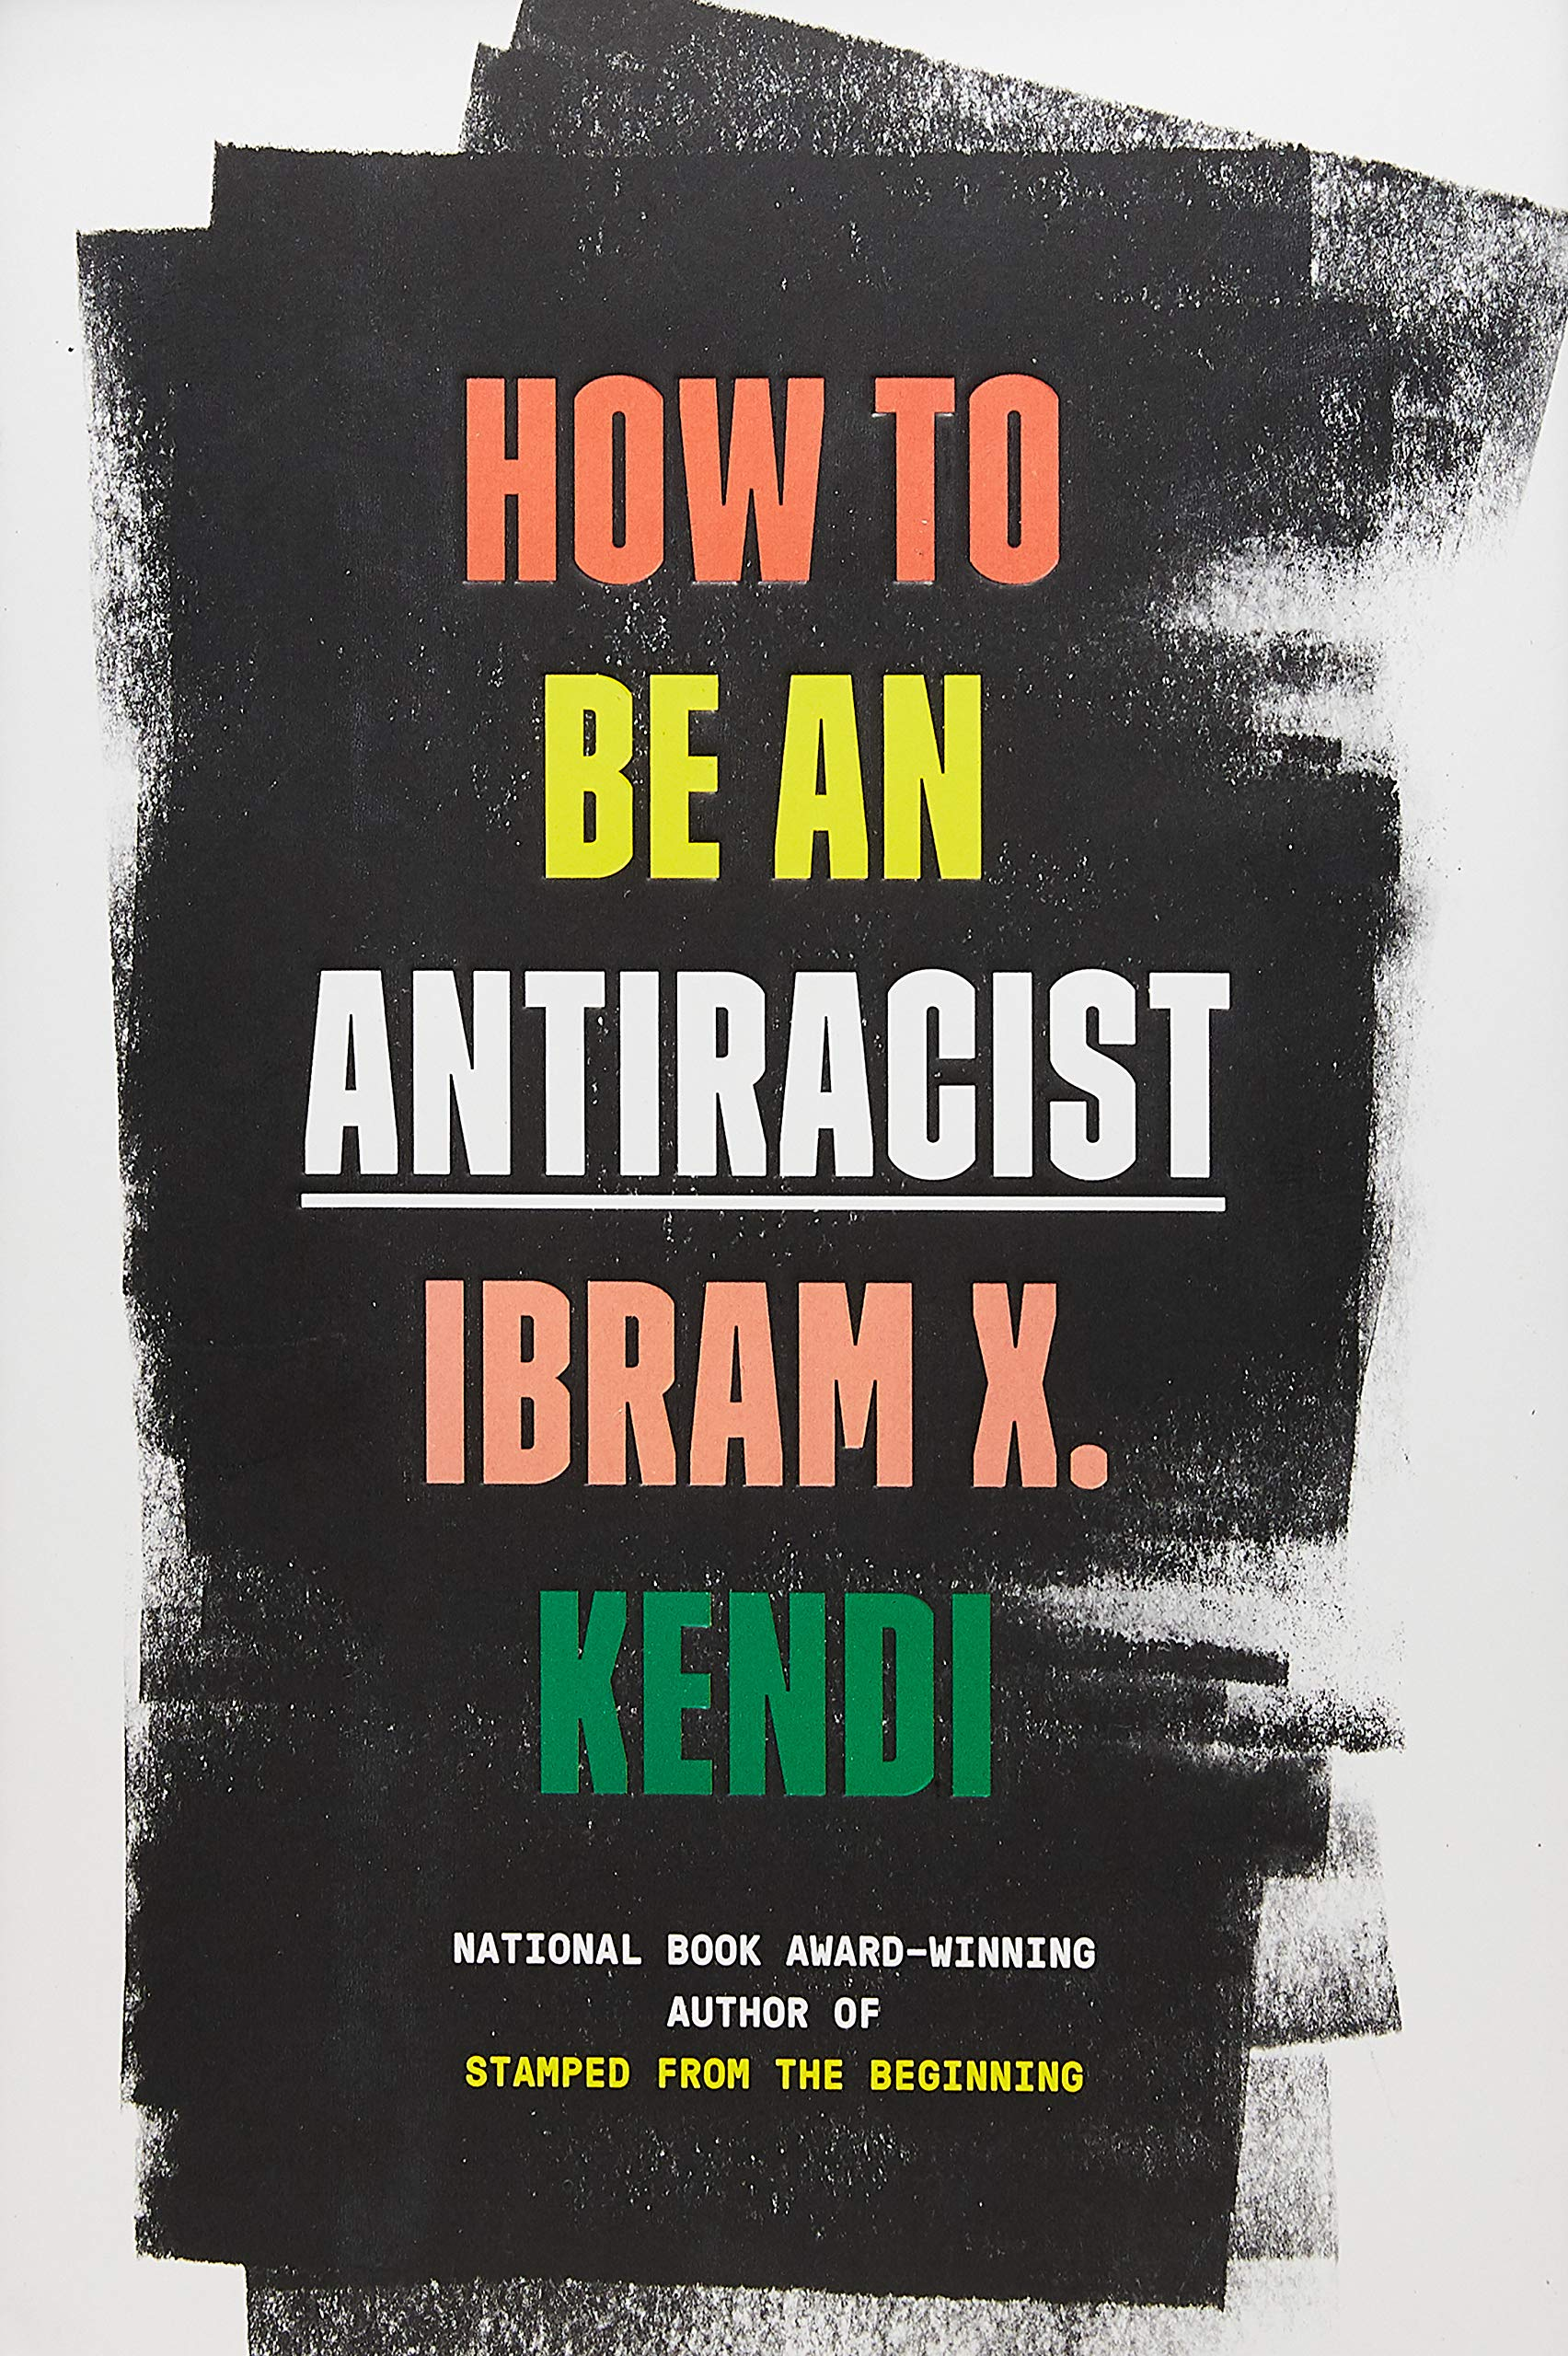 How to Be an Antiracist by One World